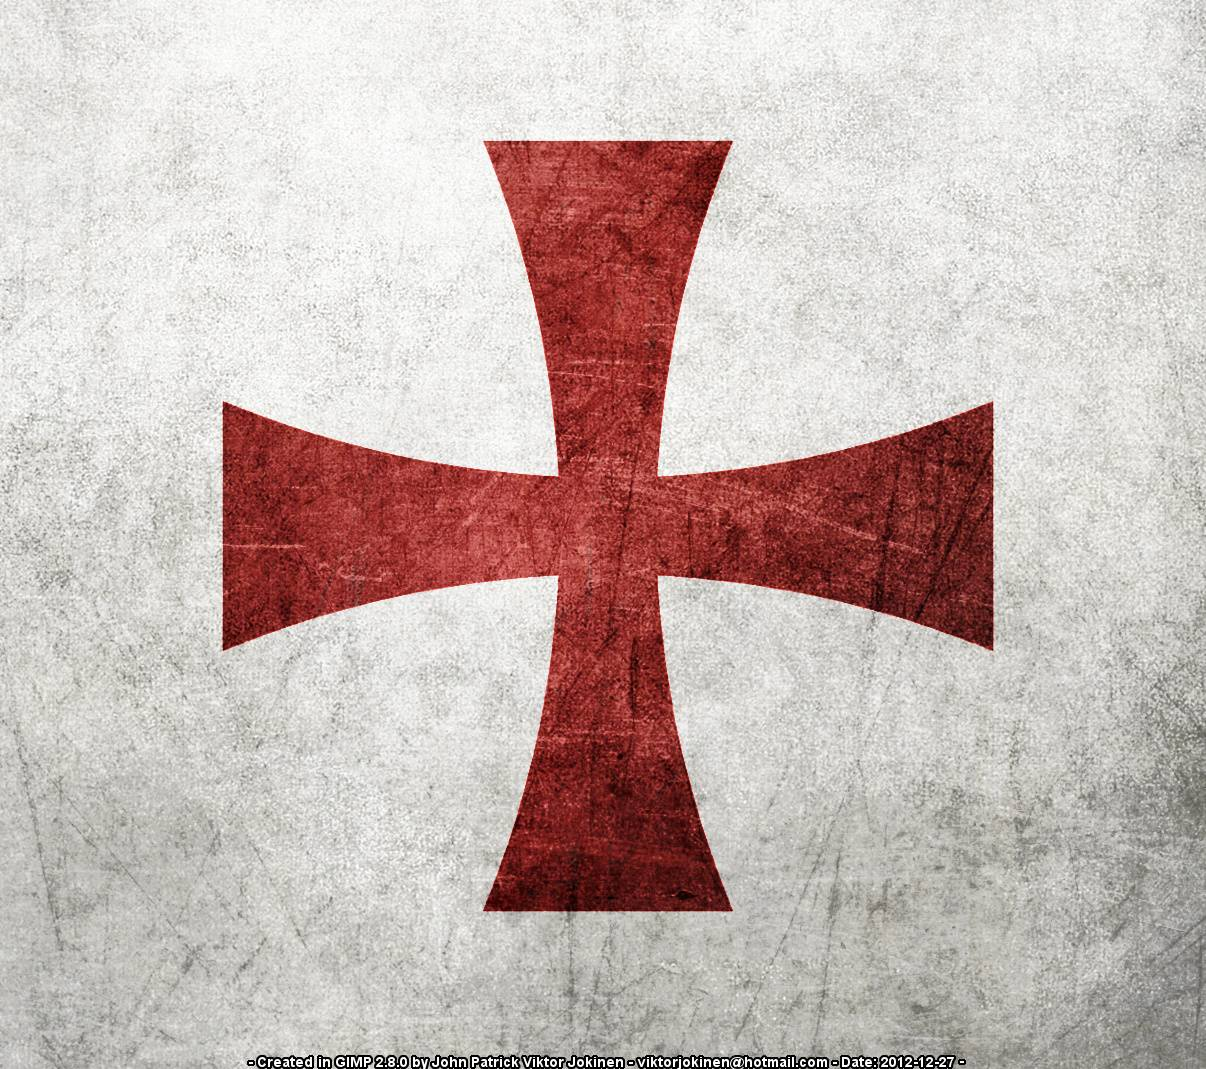 Templar Knights Logo wallpaper by BANDITA432.